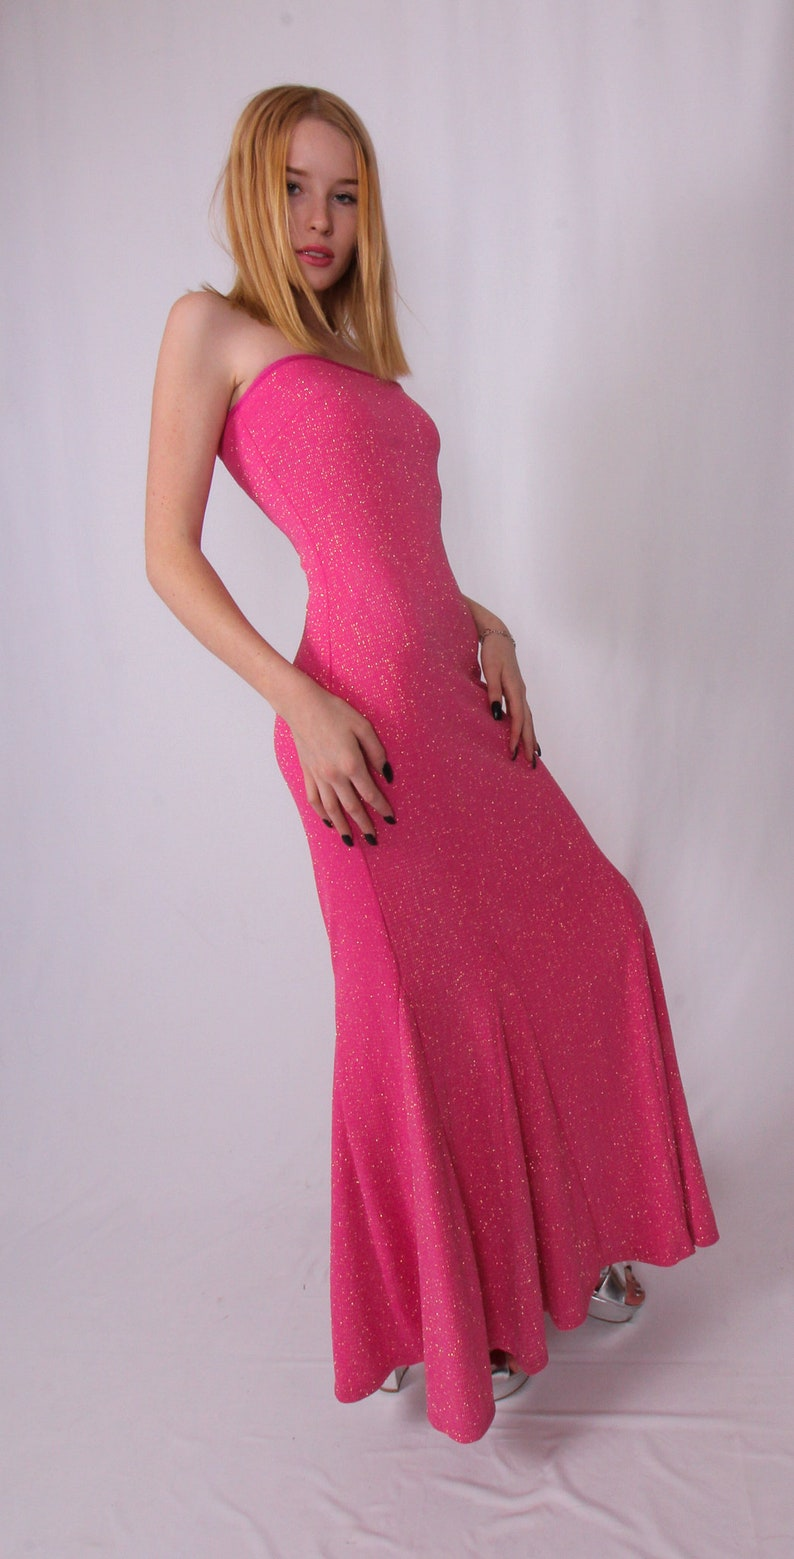 Vintage /'Jessica McClintock for Gunne Sax/' Pink Mermaid Dress Covered In Silver and Pink Glitter